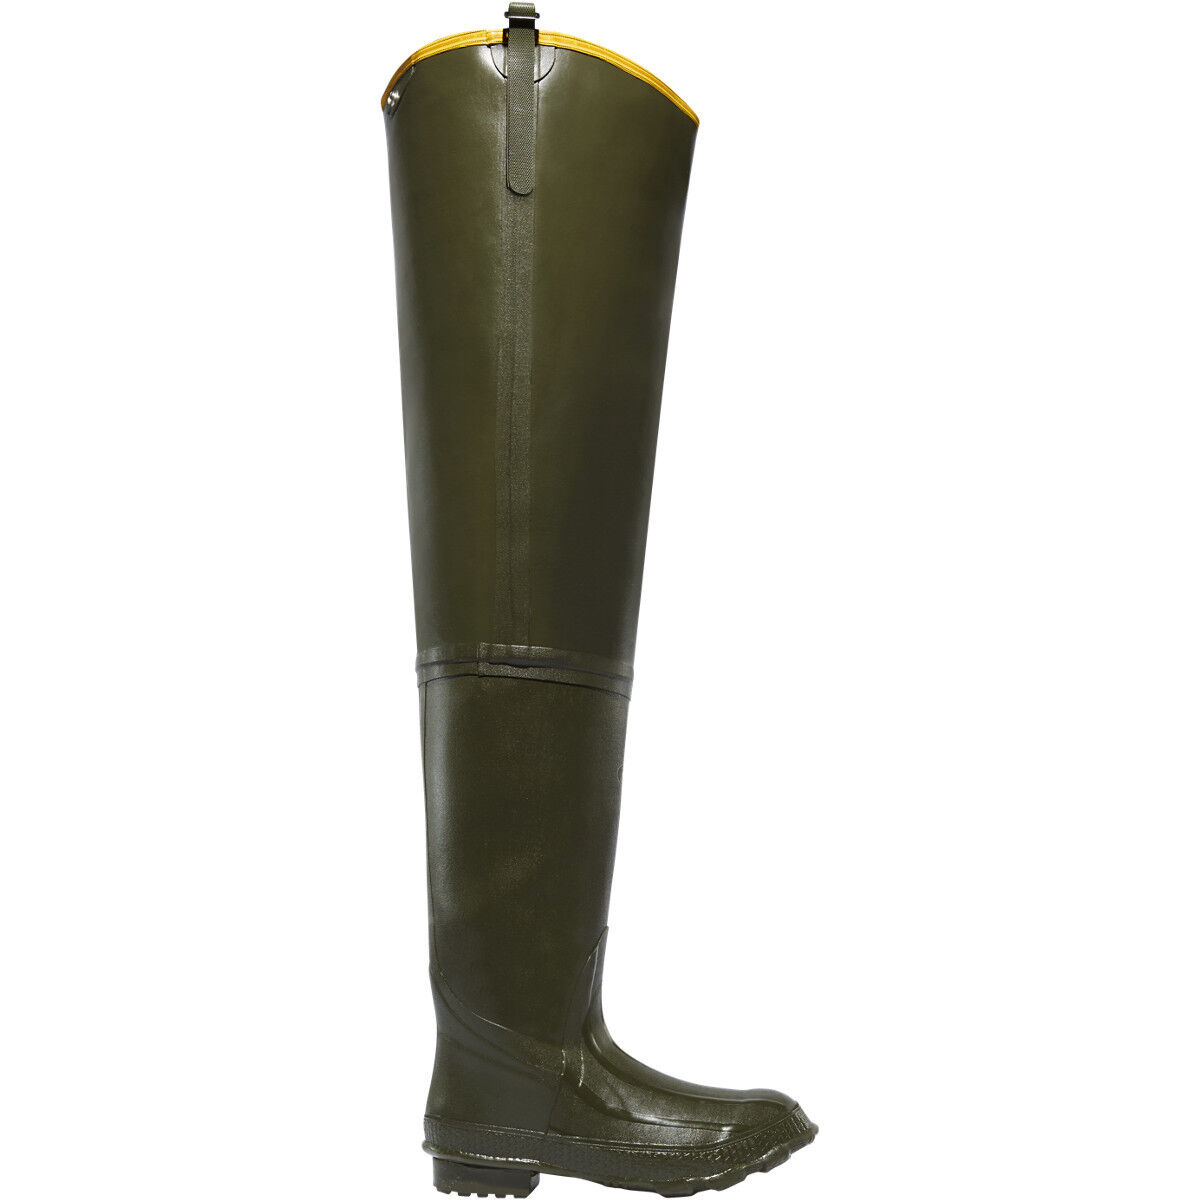 Lacrosse Men's 156040 Marsh 32  OD Green Rubber Hunting  Work Wader Boots  be in great demand